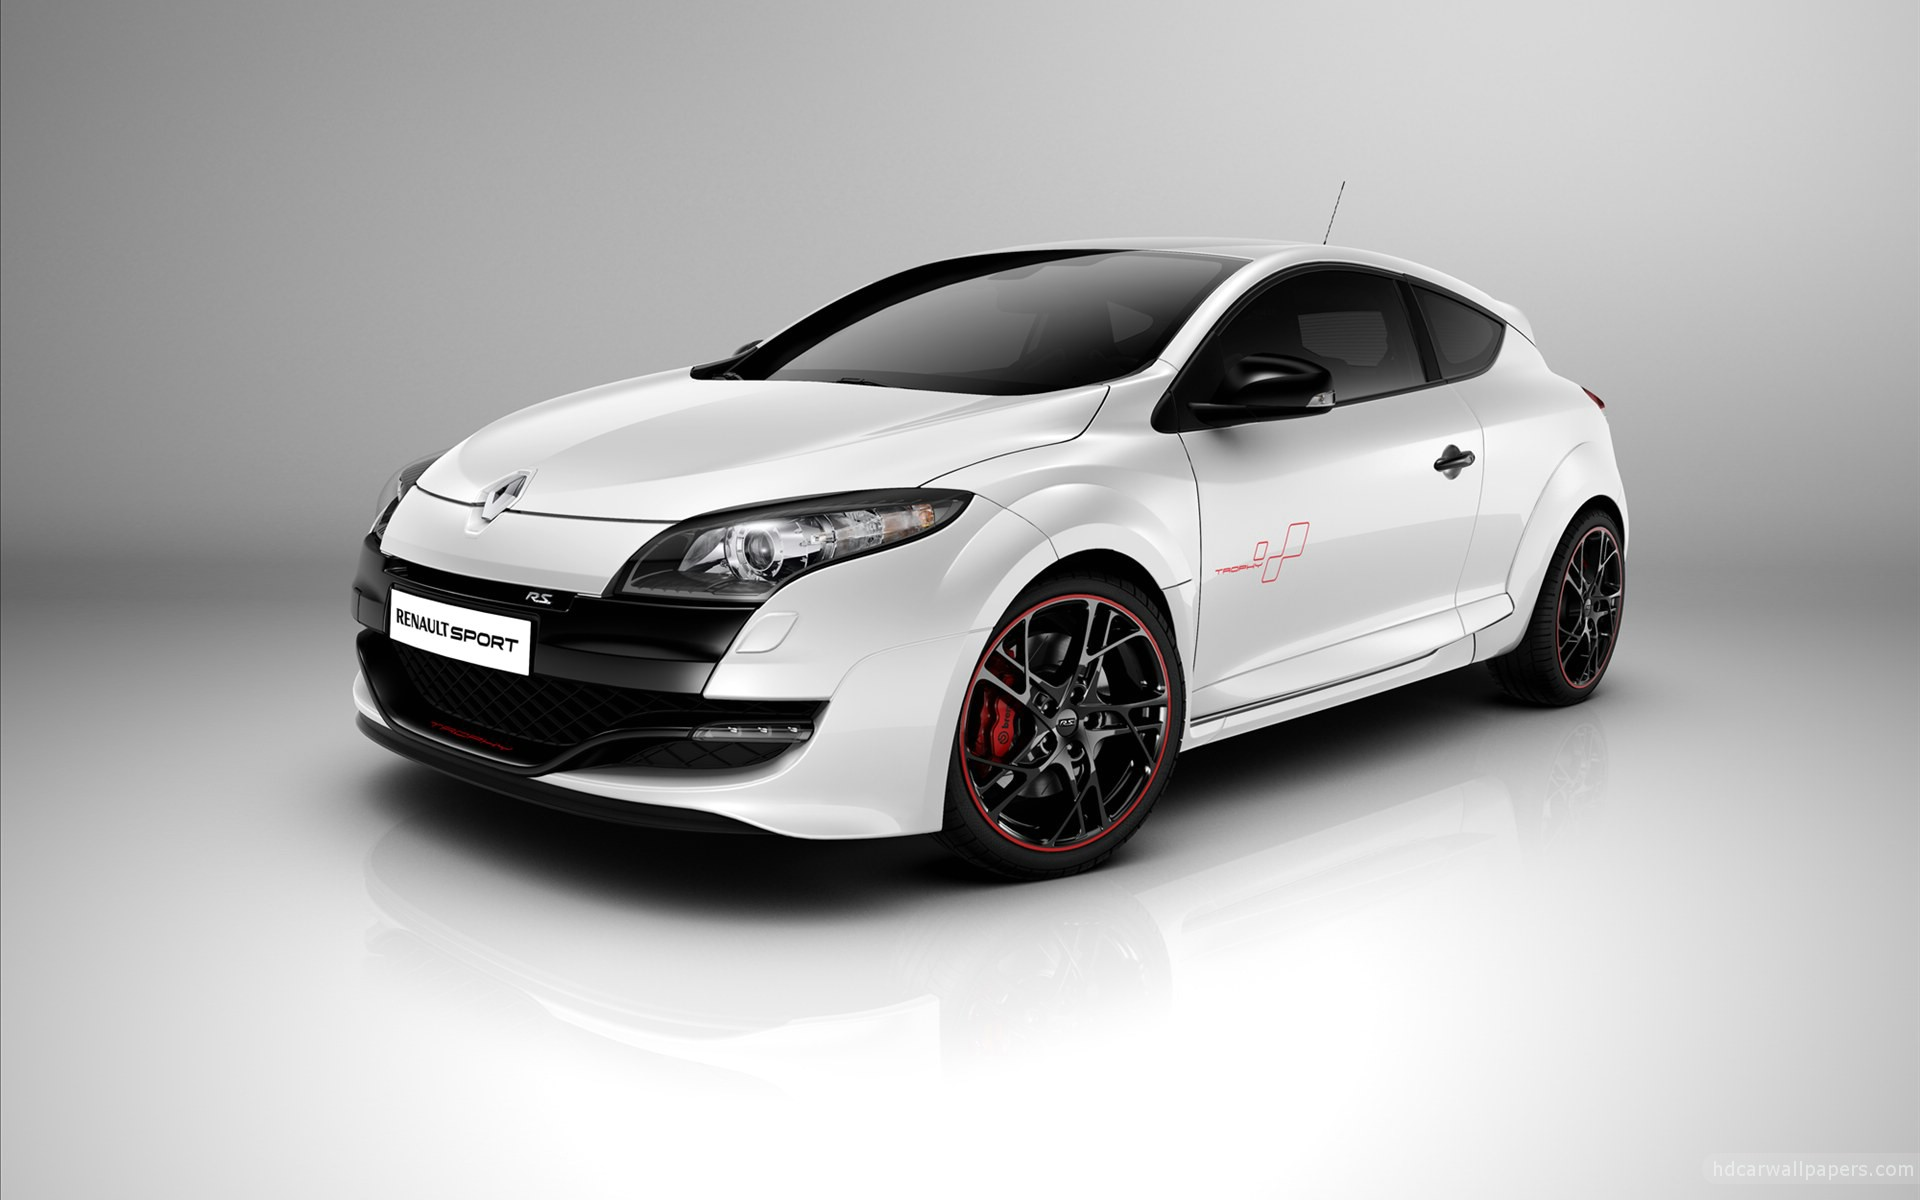 2012 renault megane rs trophy wallpaper hd car wallpapers id 2068. Black Bedroom Furniture Sets. Home Design Ideas